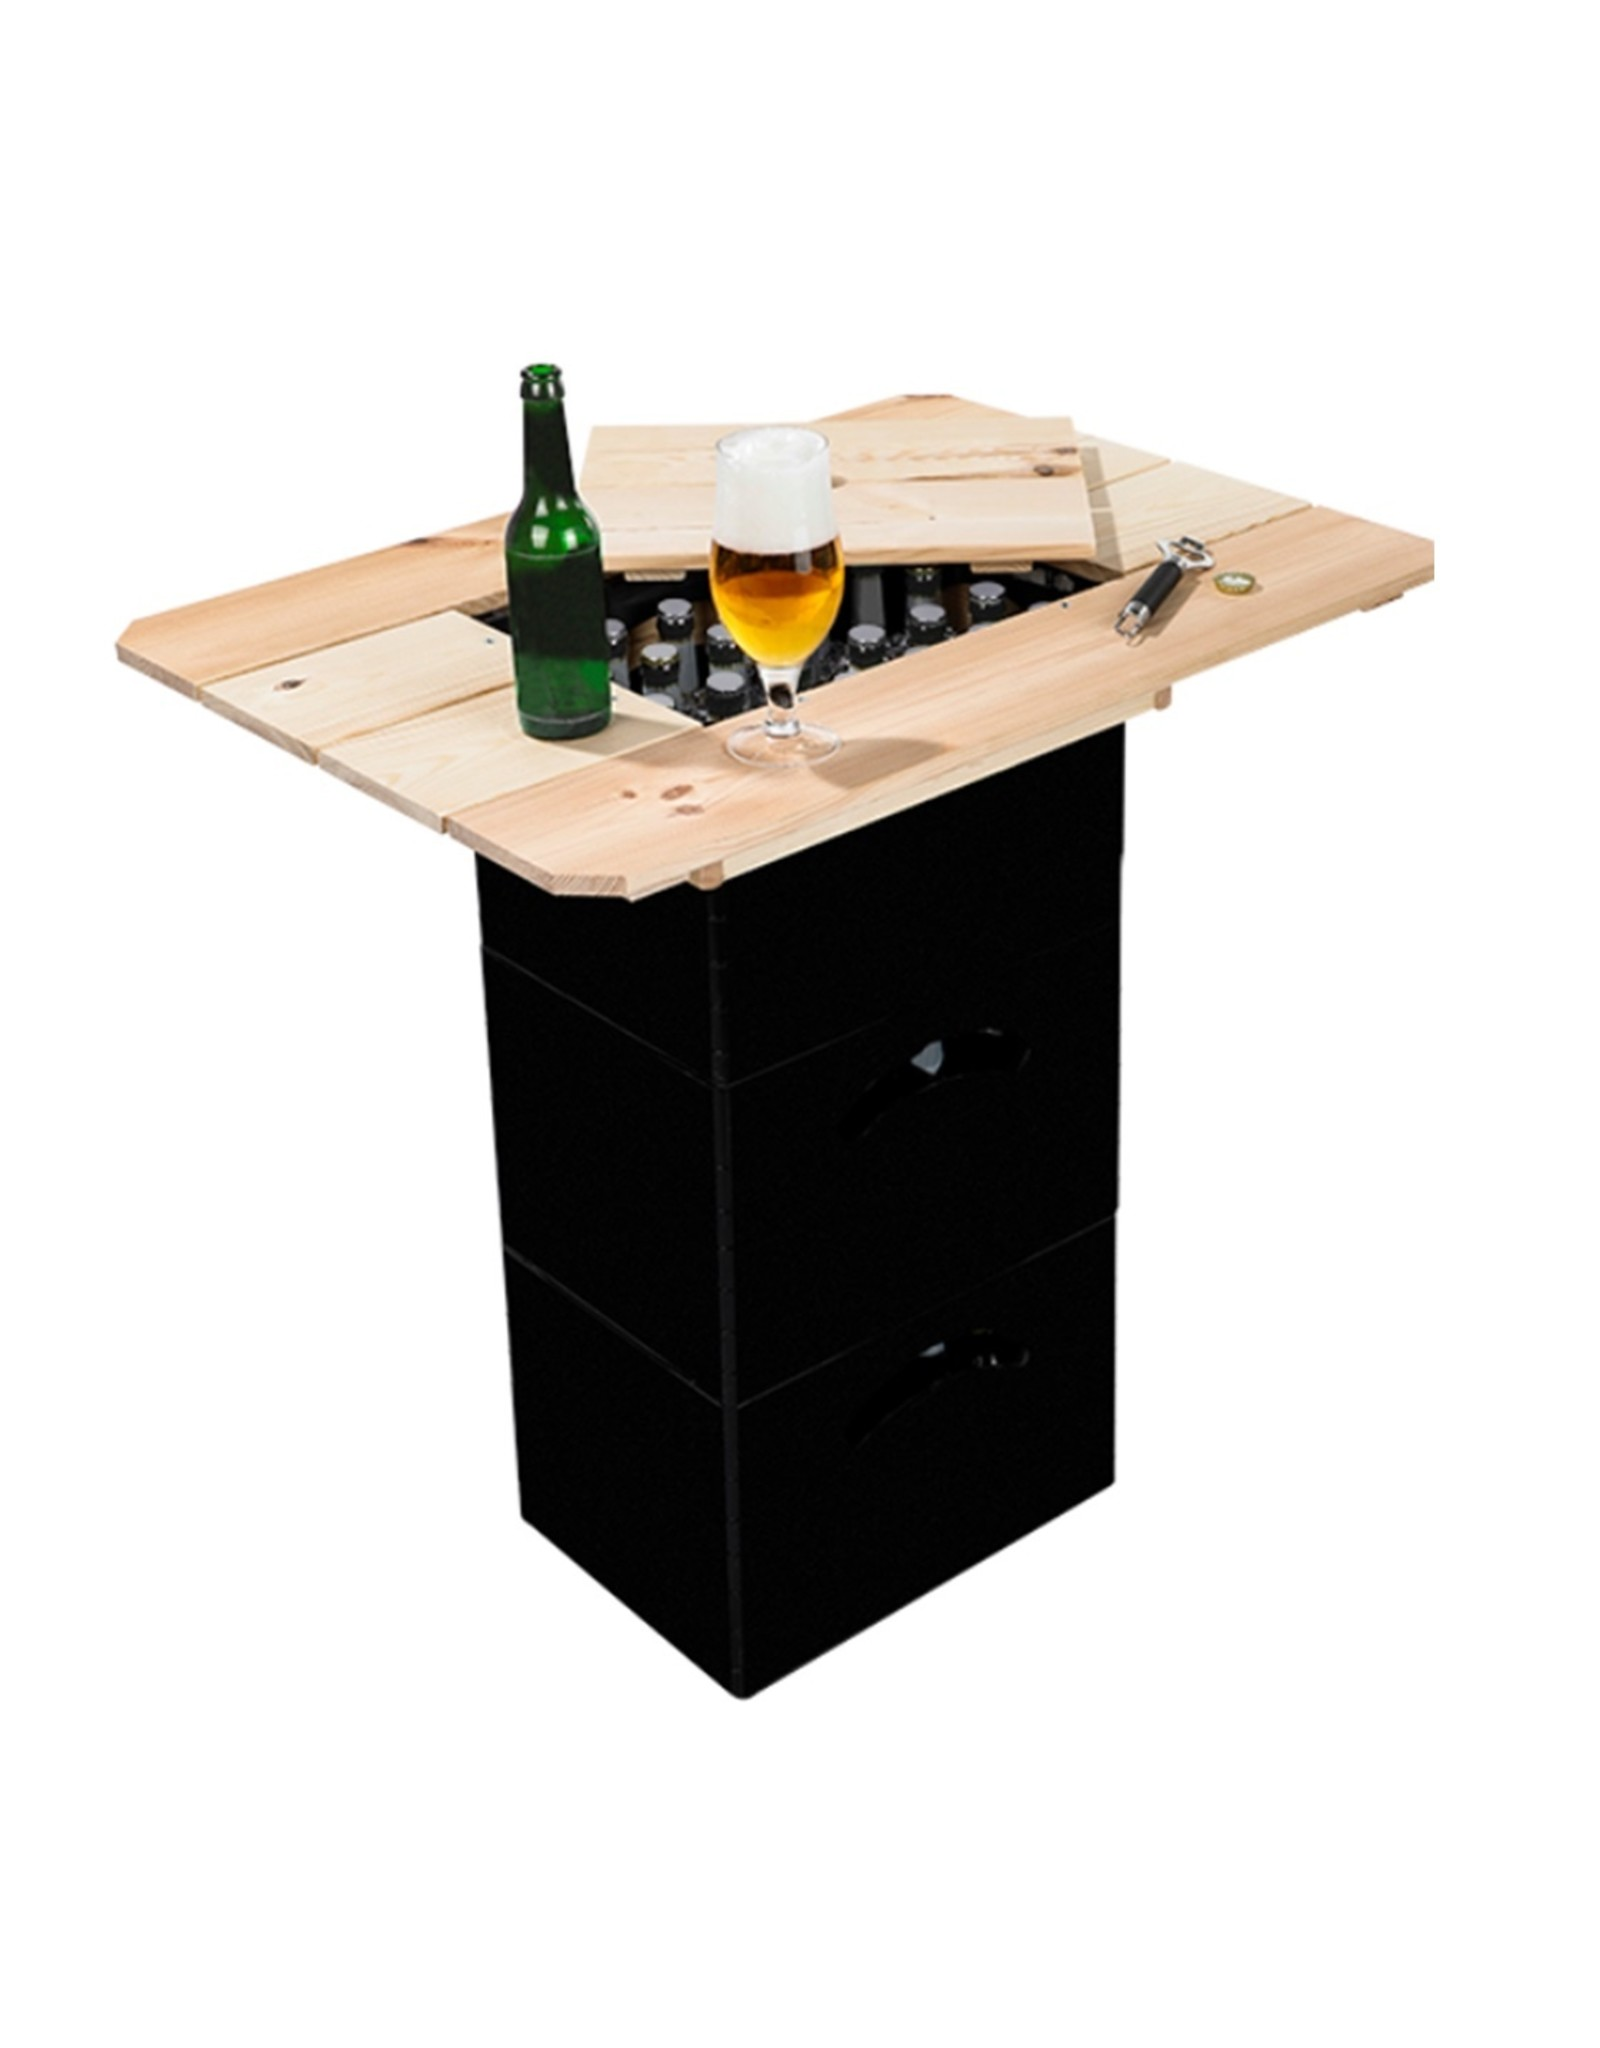 Haushalt Beer box - Wooden tabletop